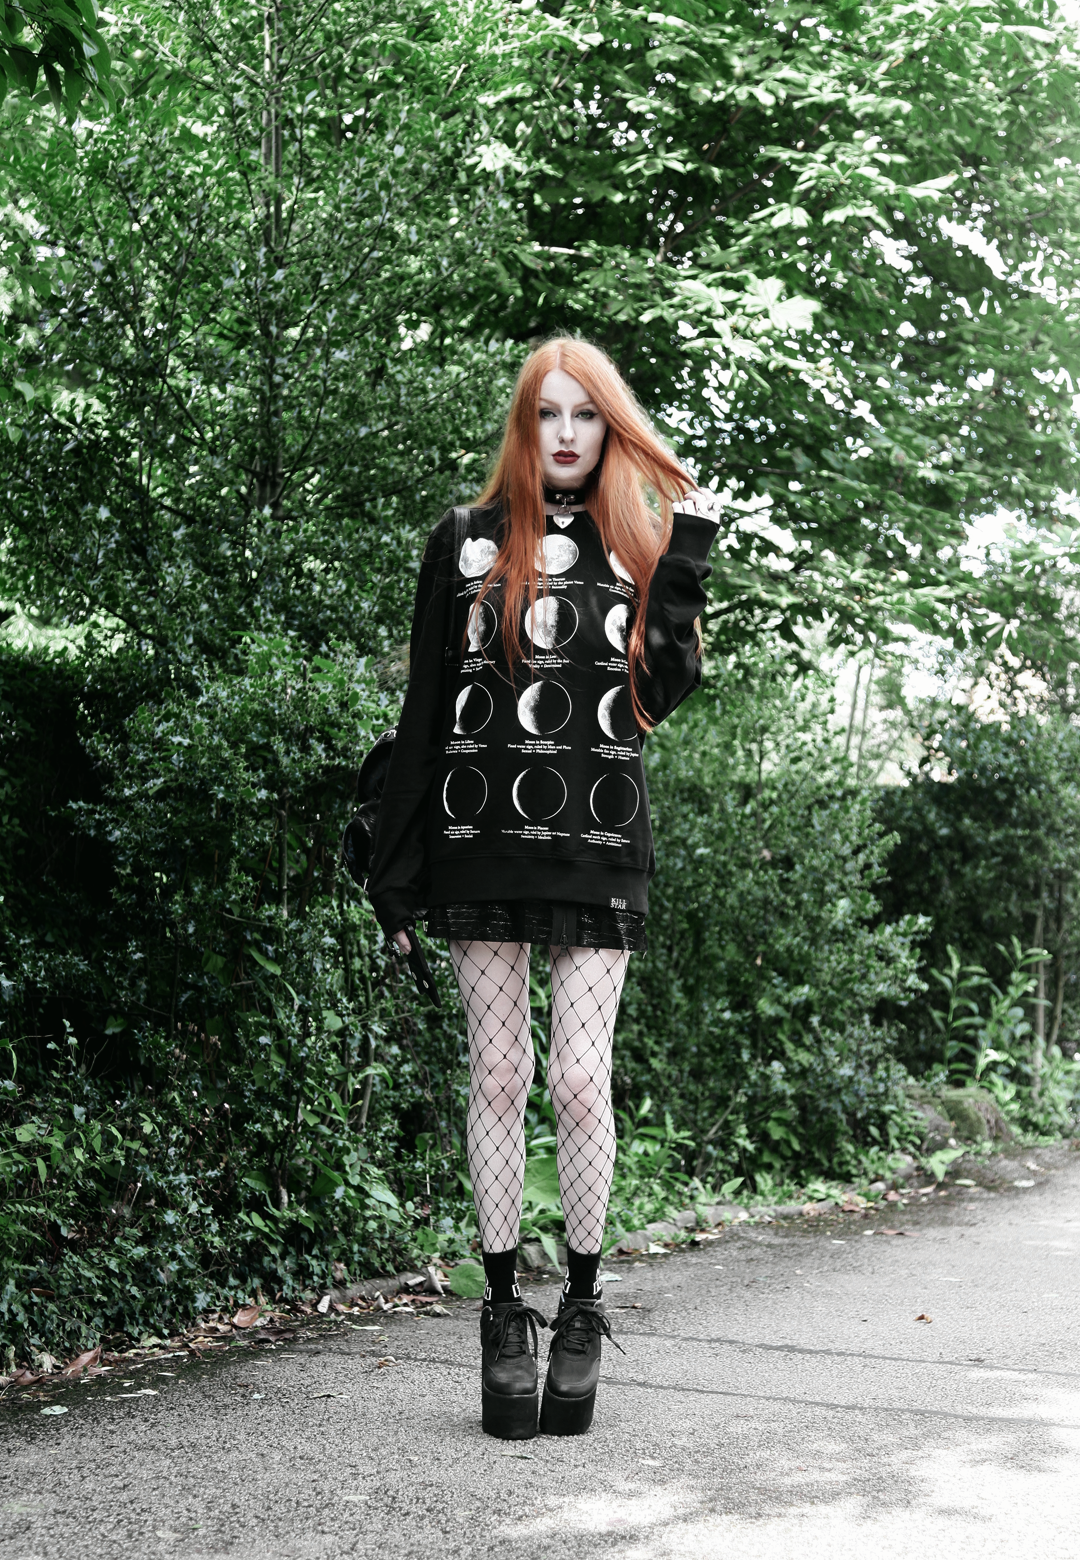 Olivia Emily wears Killstar Emily Heart Locket Choker, Killstar Lunar Sweatshirt, Edun Patent Skirt, Asos Fishnet tights & YRU Qozmo platform shoes